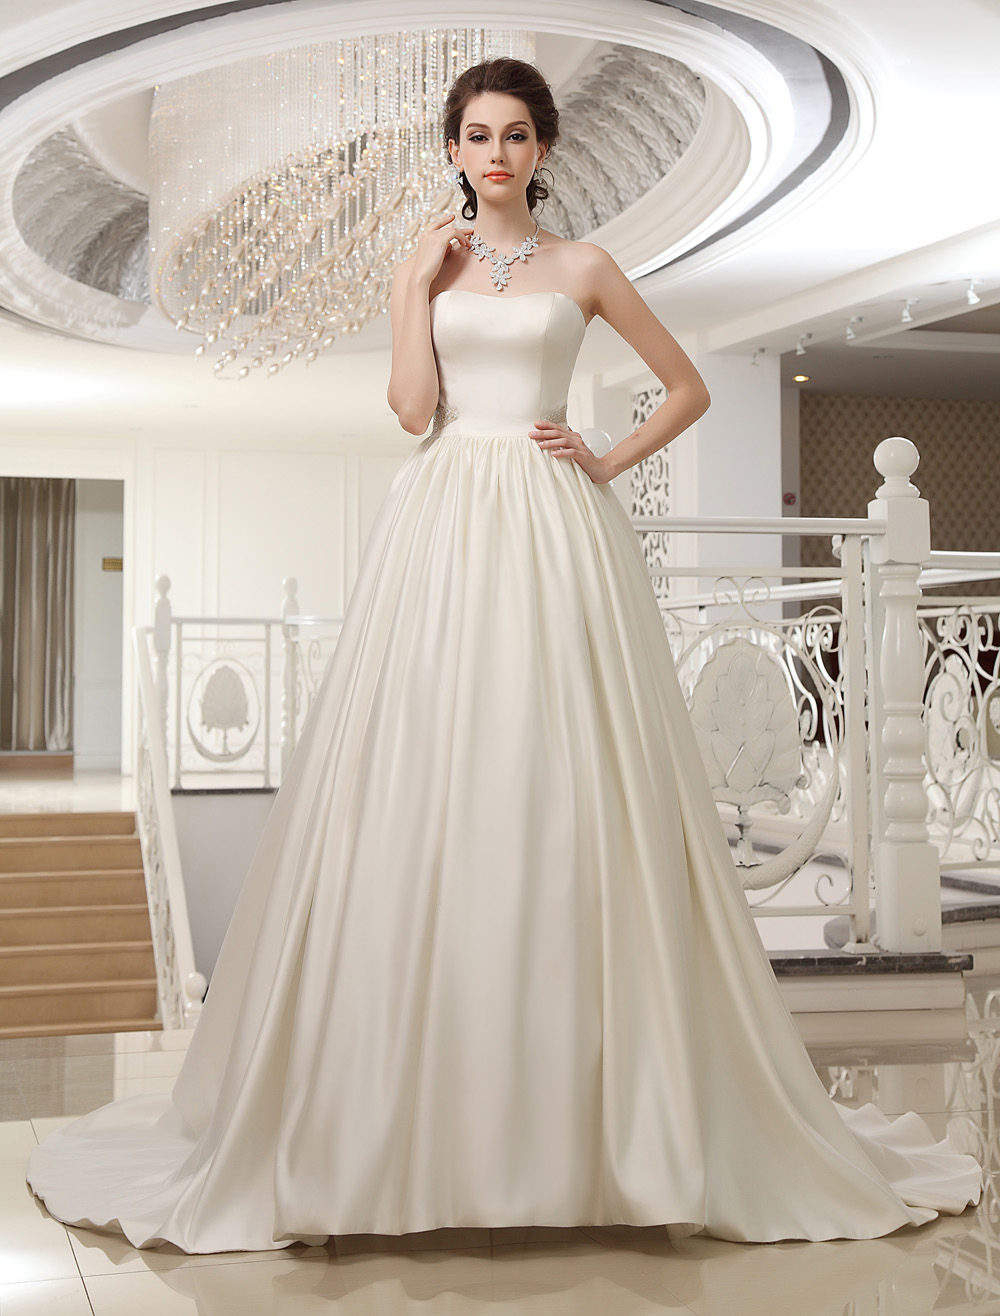 Ivory Sweetheart Neck A-line Strapless Beading Bridal Wedding Dress  Milanoo